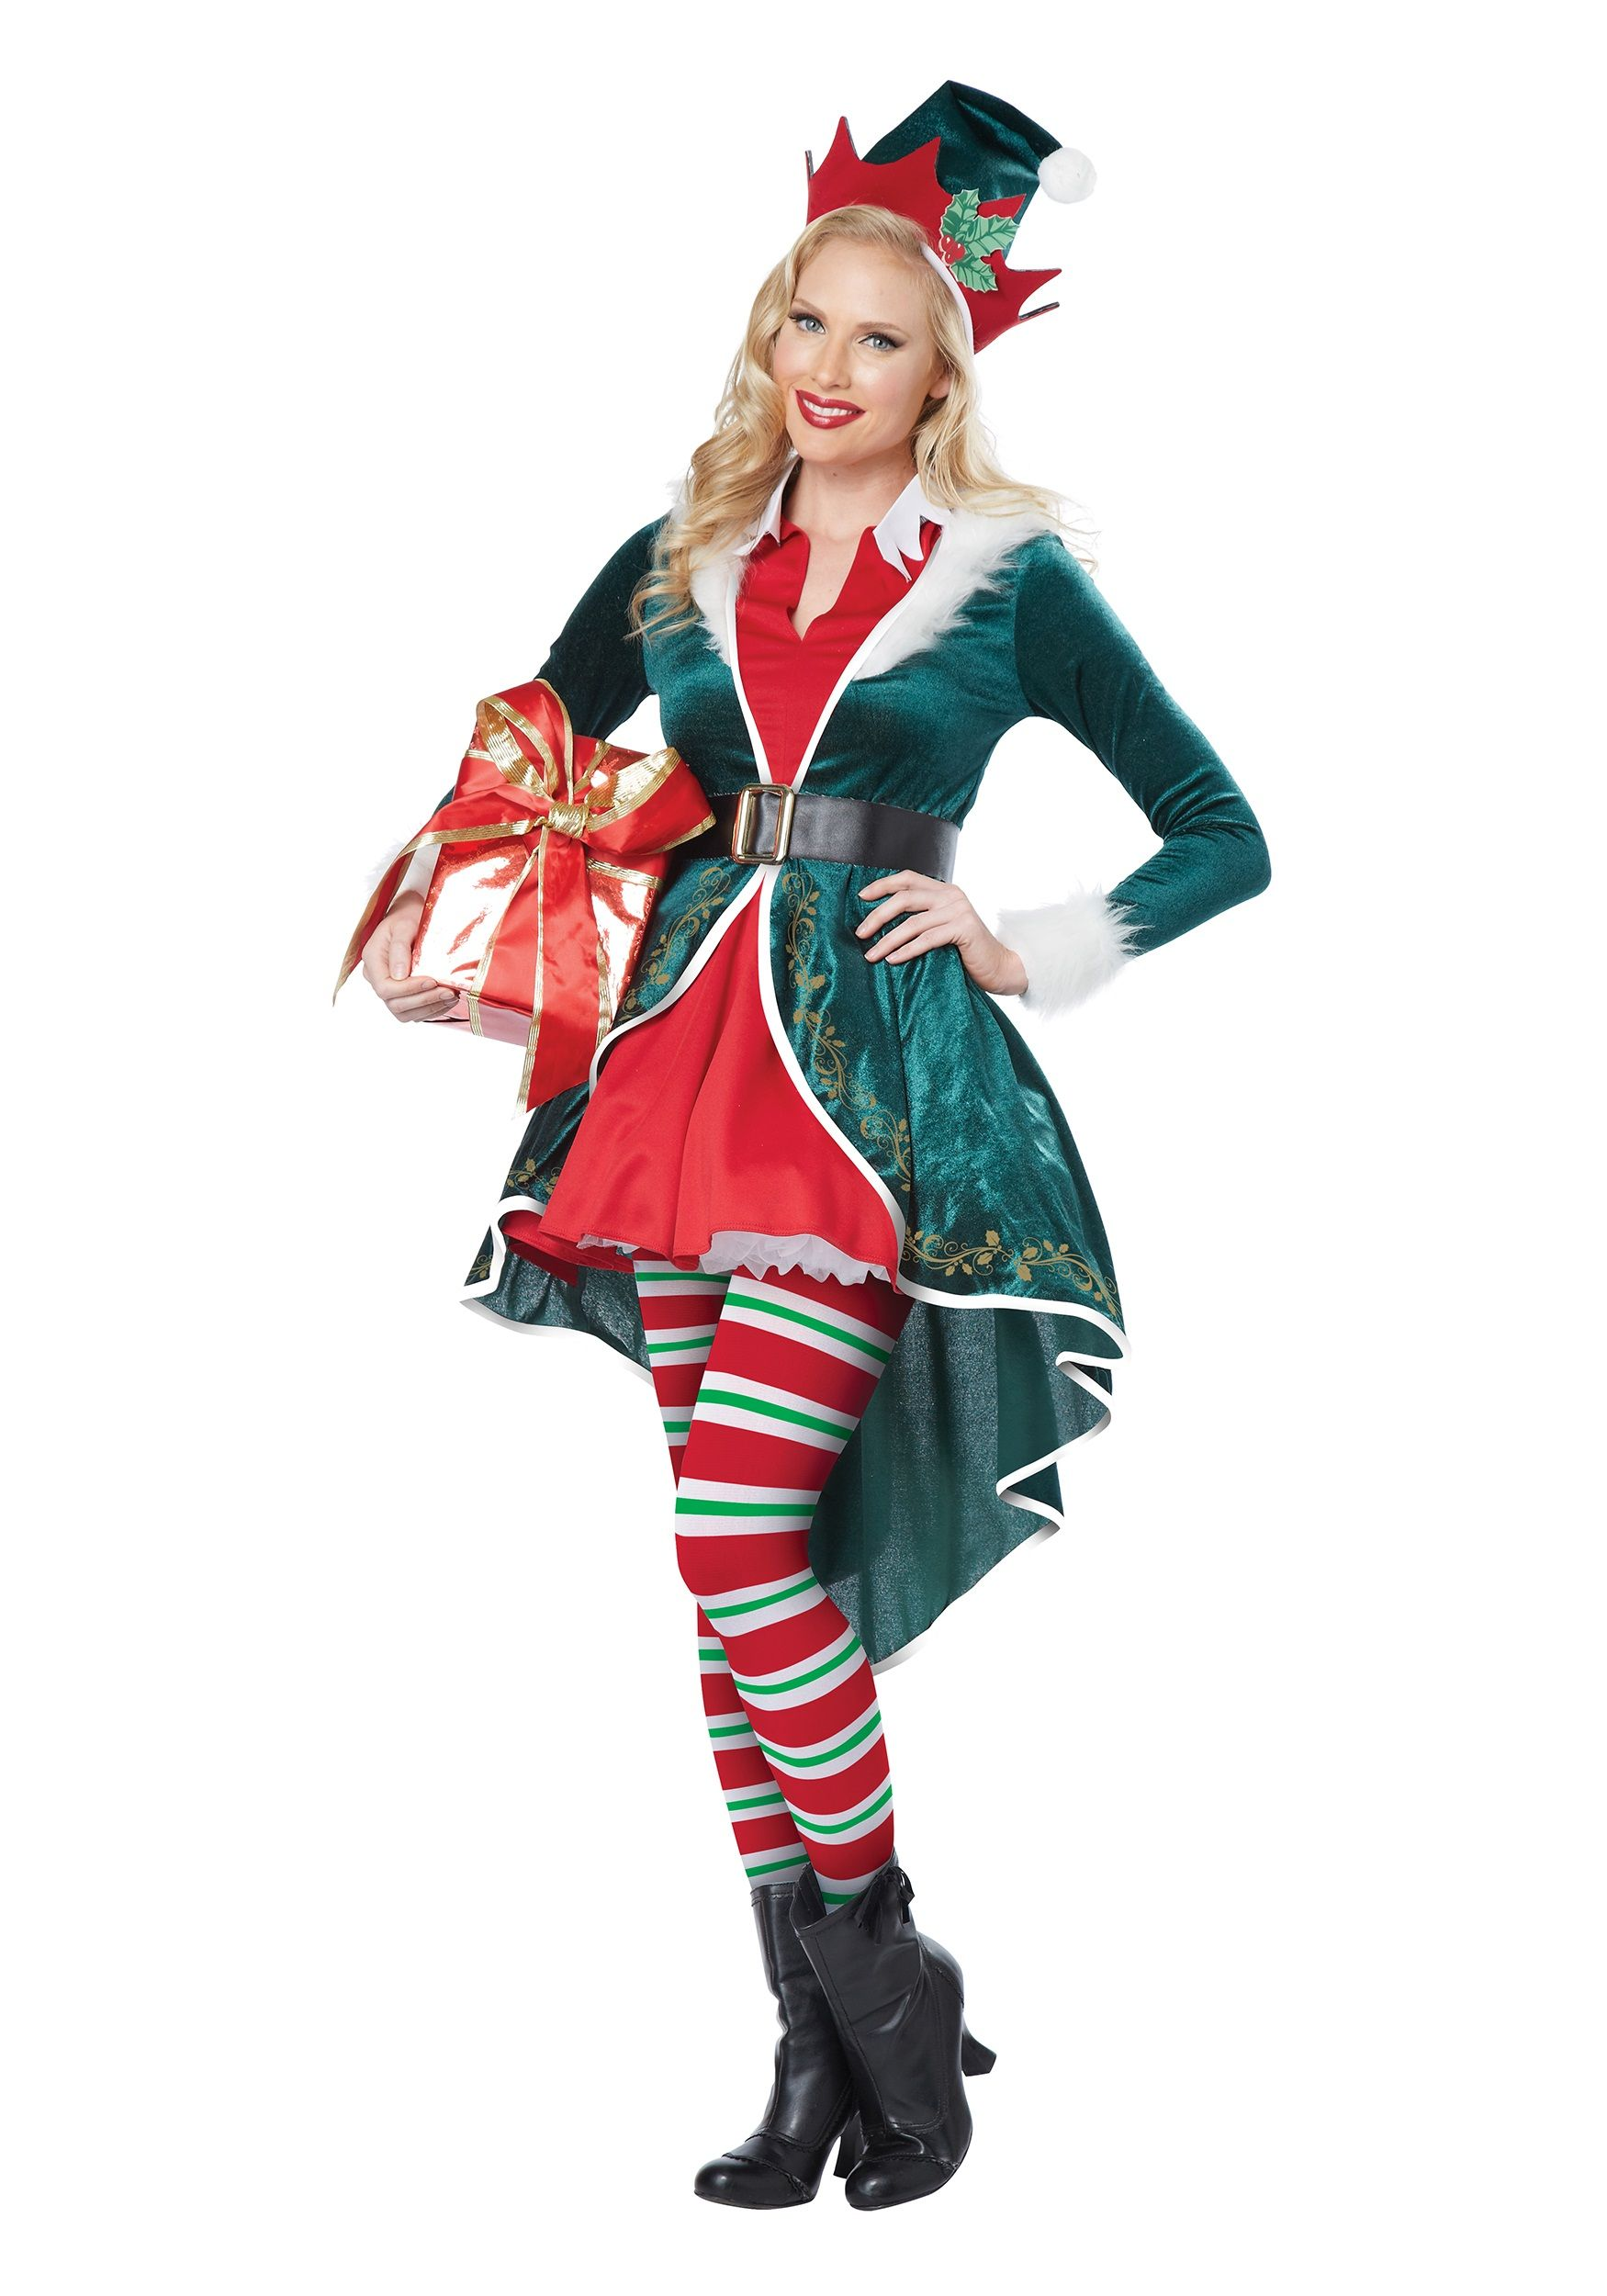 Christmas Elf Costume.Pin On Costumes